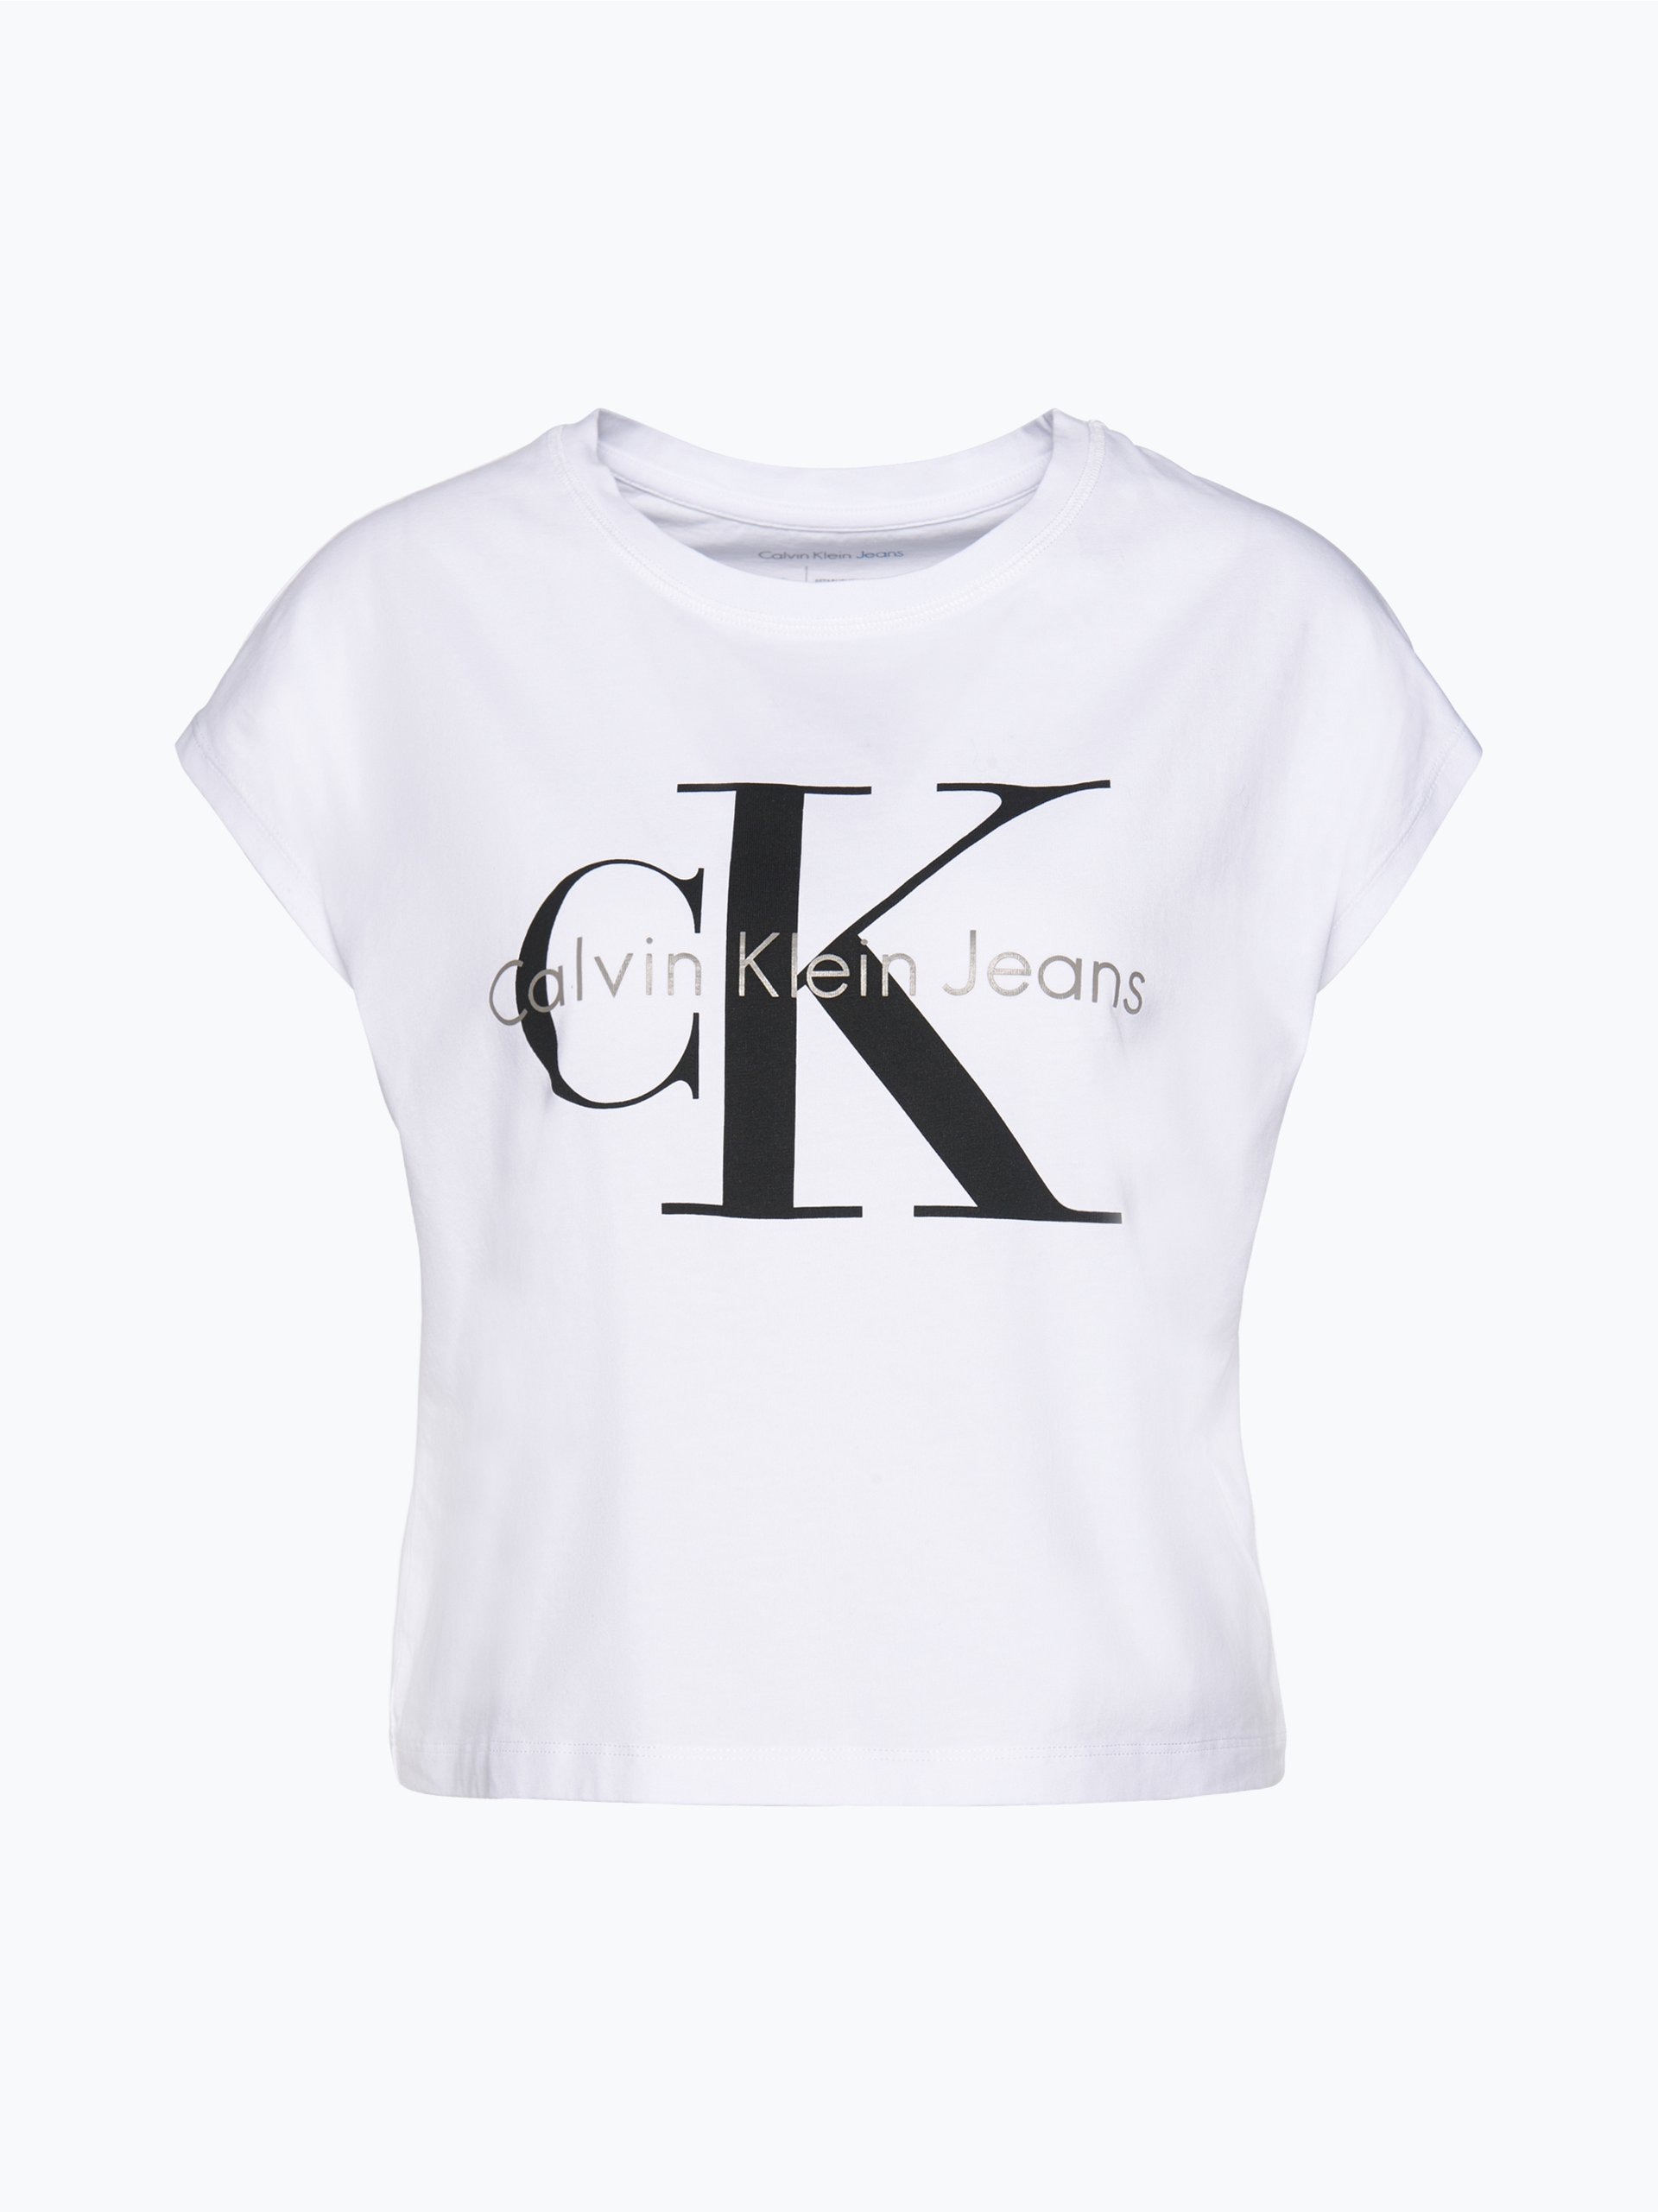 calvin klein jeans damen t shirt wei gemustert online. Black Bedroom Furniture Sets. Home Design Ideas